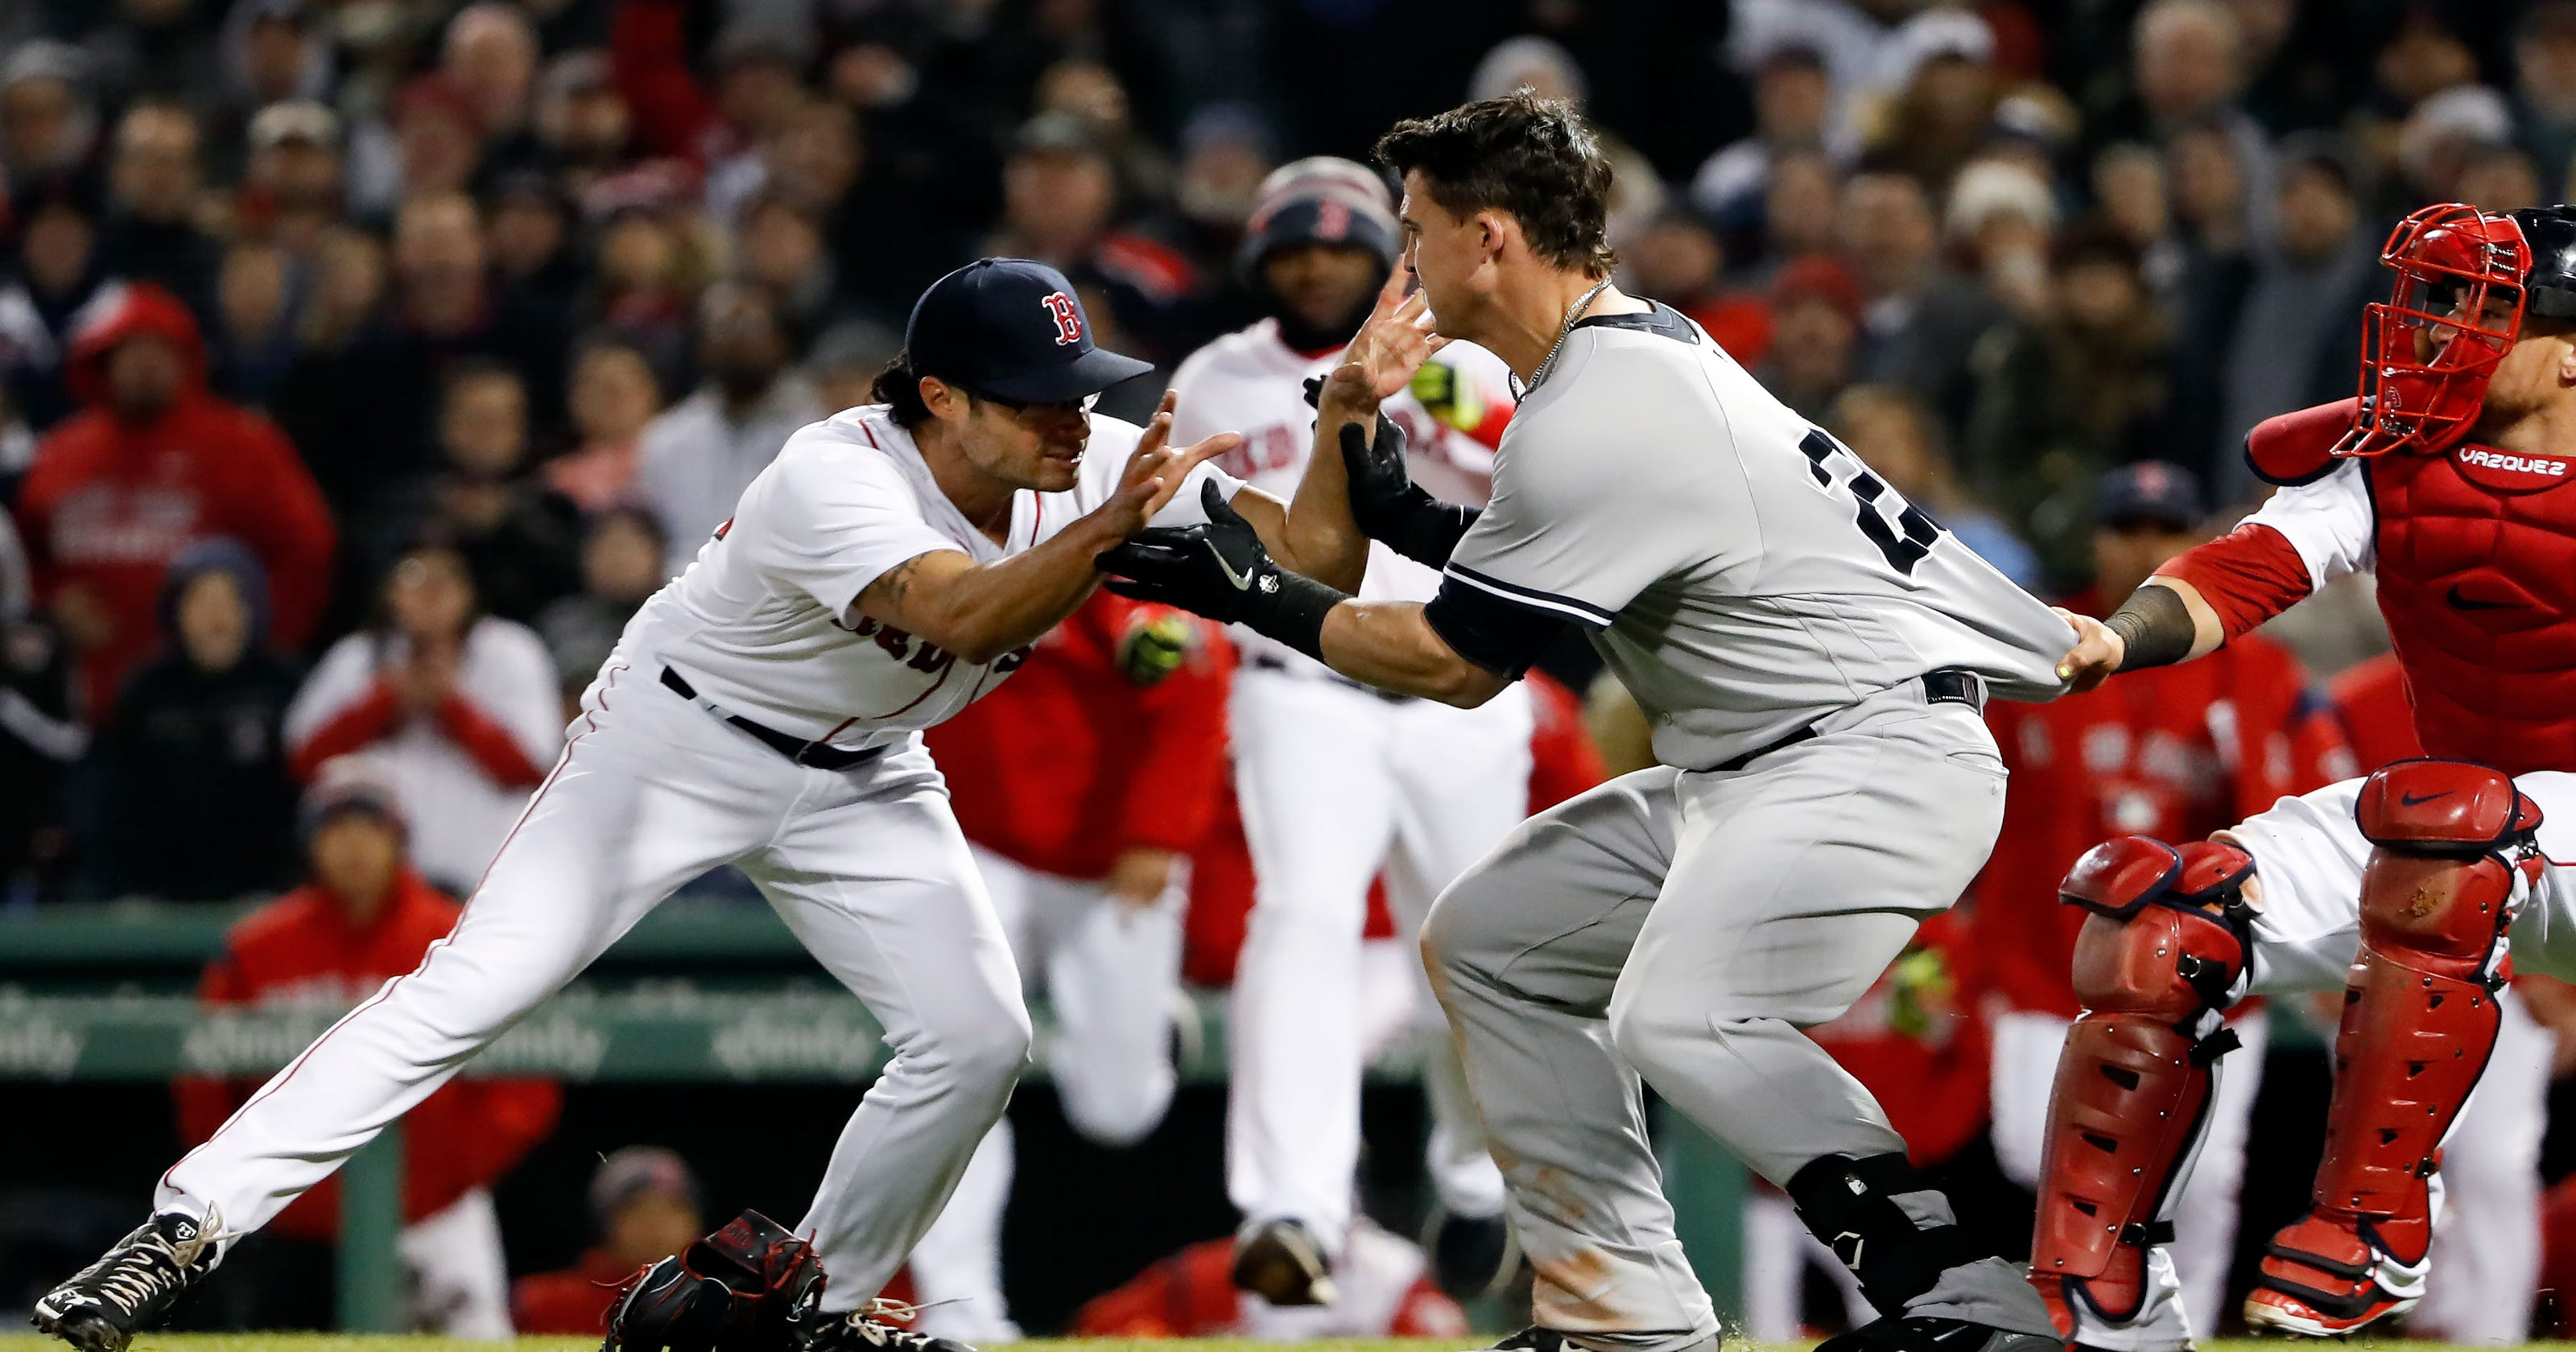 yankees red sox brawl bad blood on the field but plenty to love